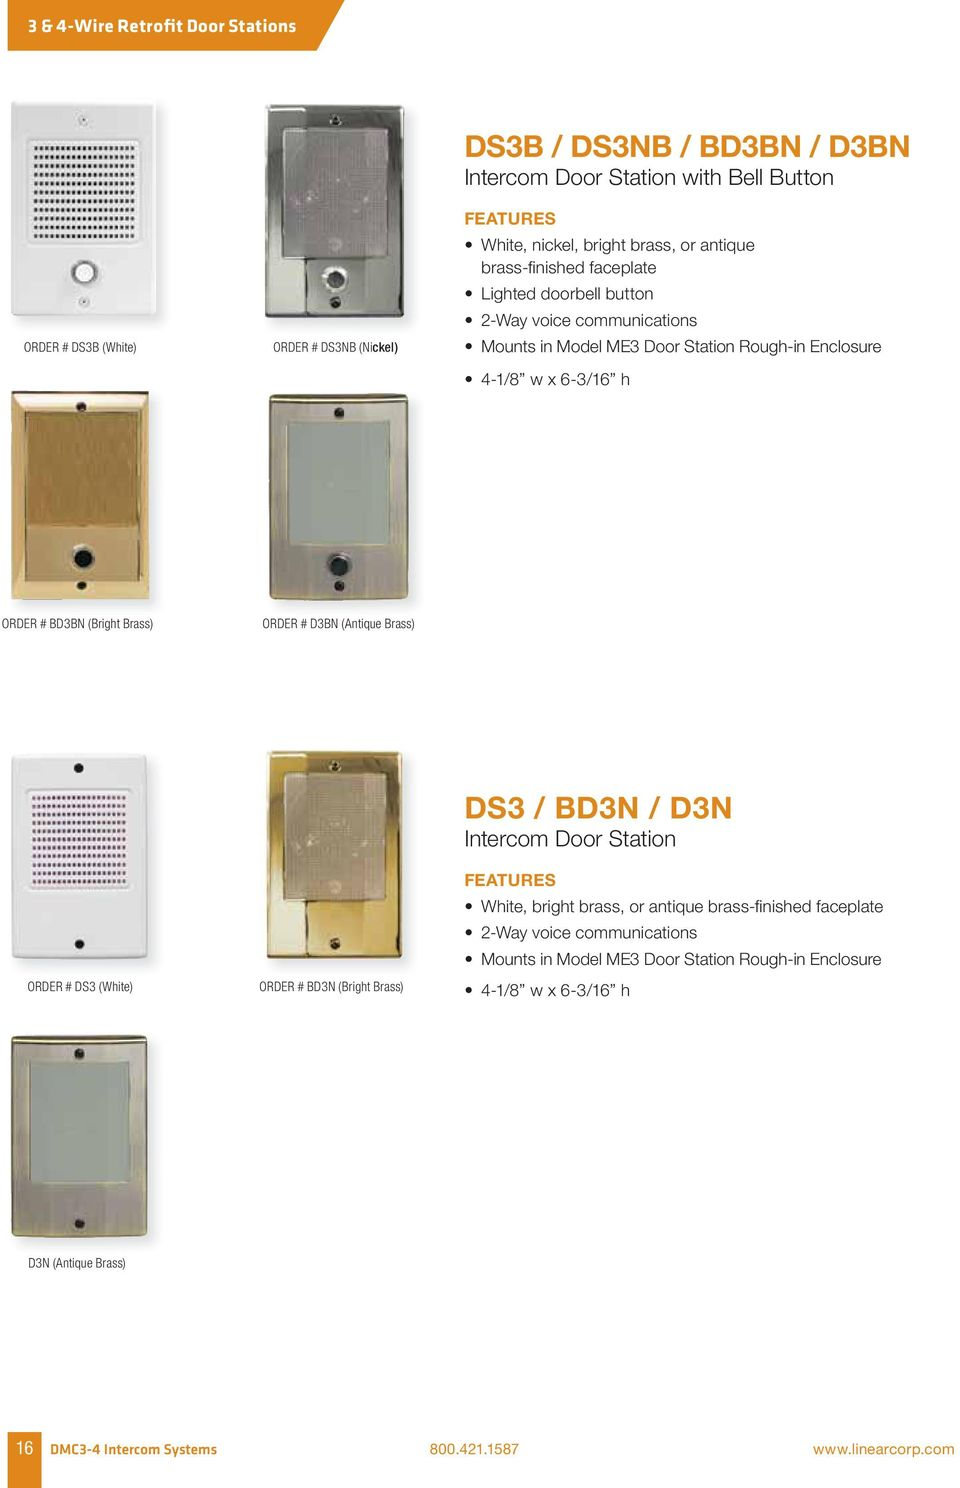 Brass) ORDER # D3BN (Antique Brass) ORDER # DS3 (White) ORDER # BD3N (Bright Brass) DS3 / BD3N / D3N Intercom Door Station White, bright brass, or antique brass-fi nished